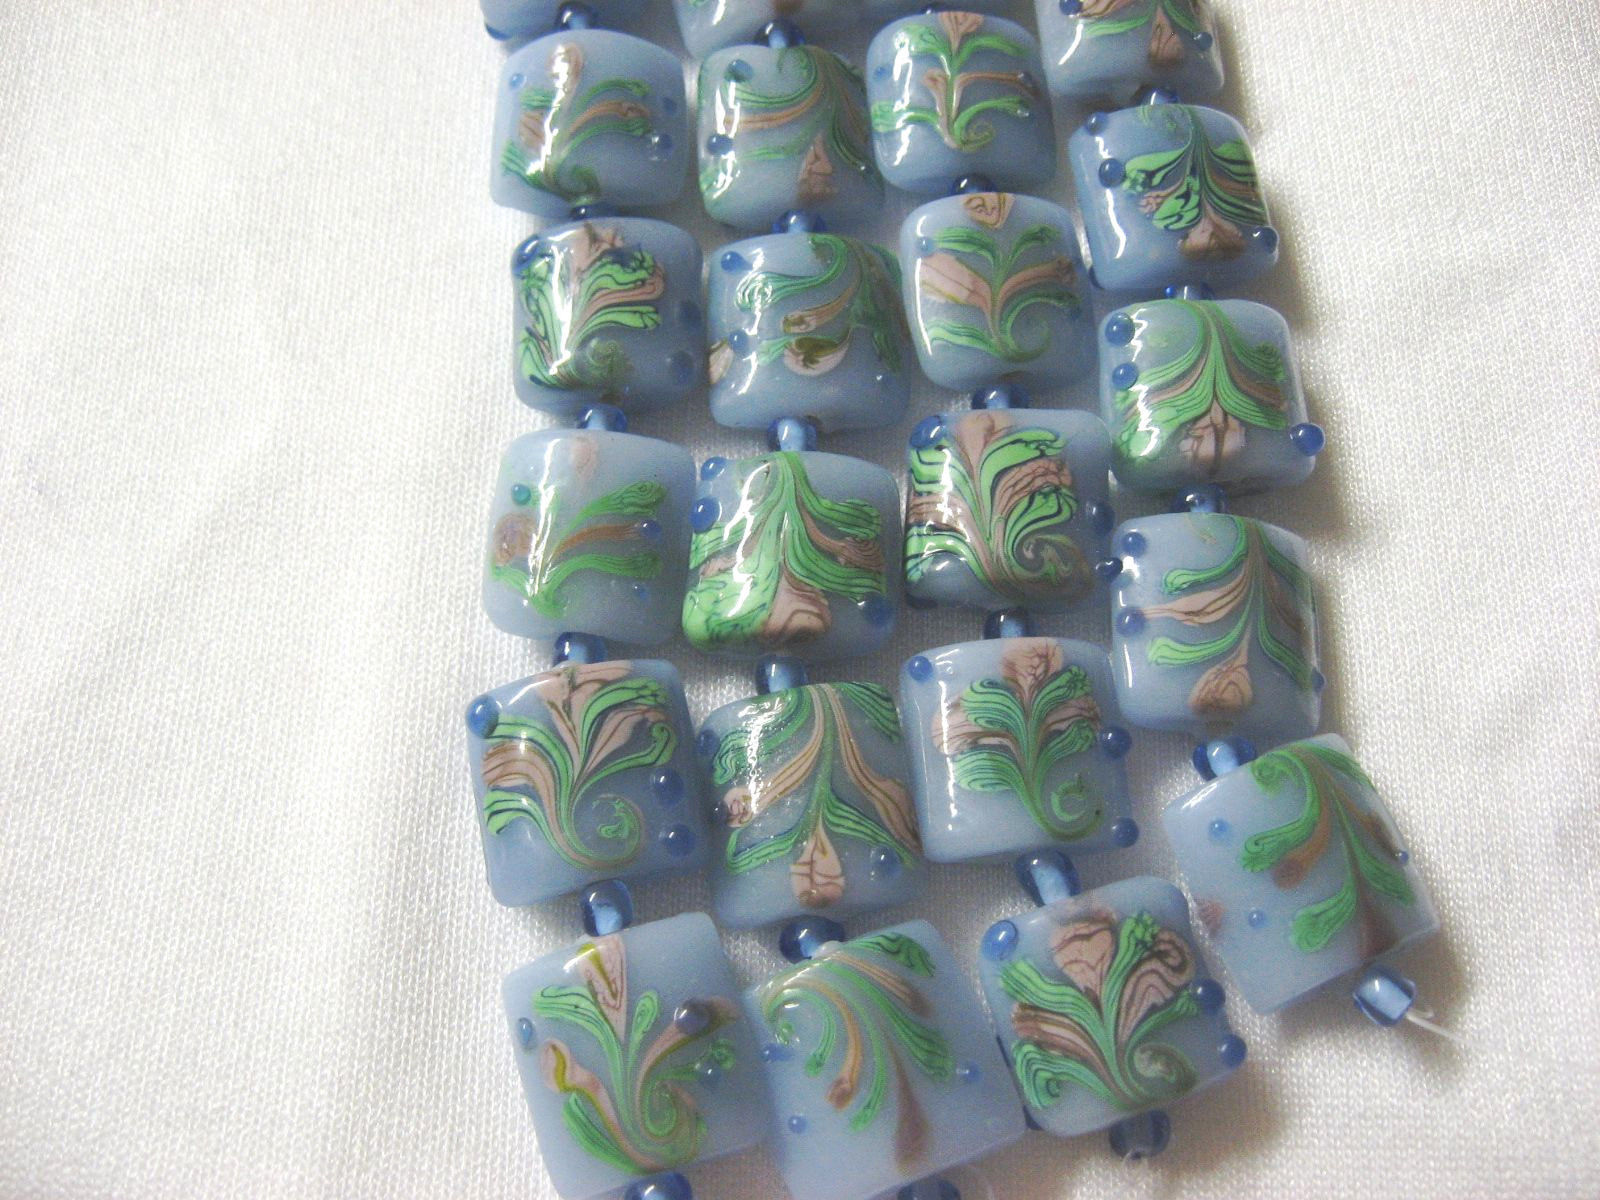 Blue Lampwork Glass Square Pillow Beads, pink, green, 15mm, 6 pc. image 2